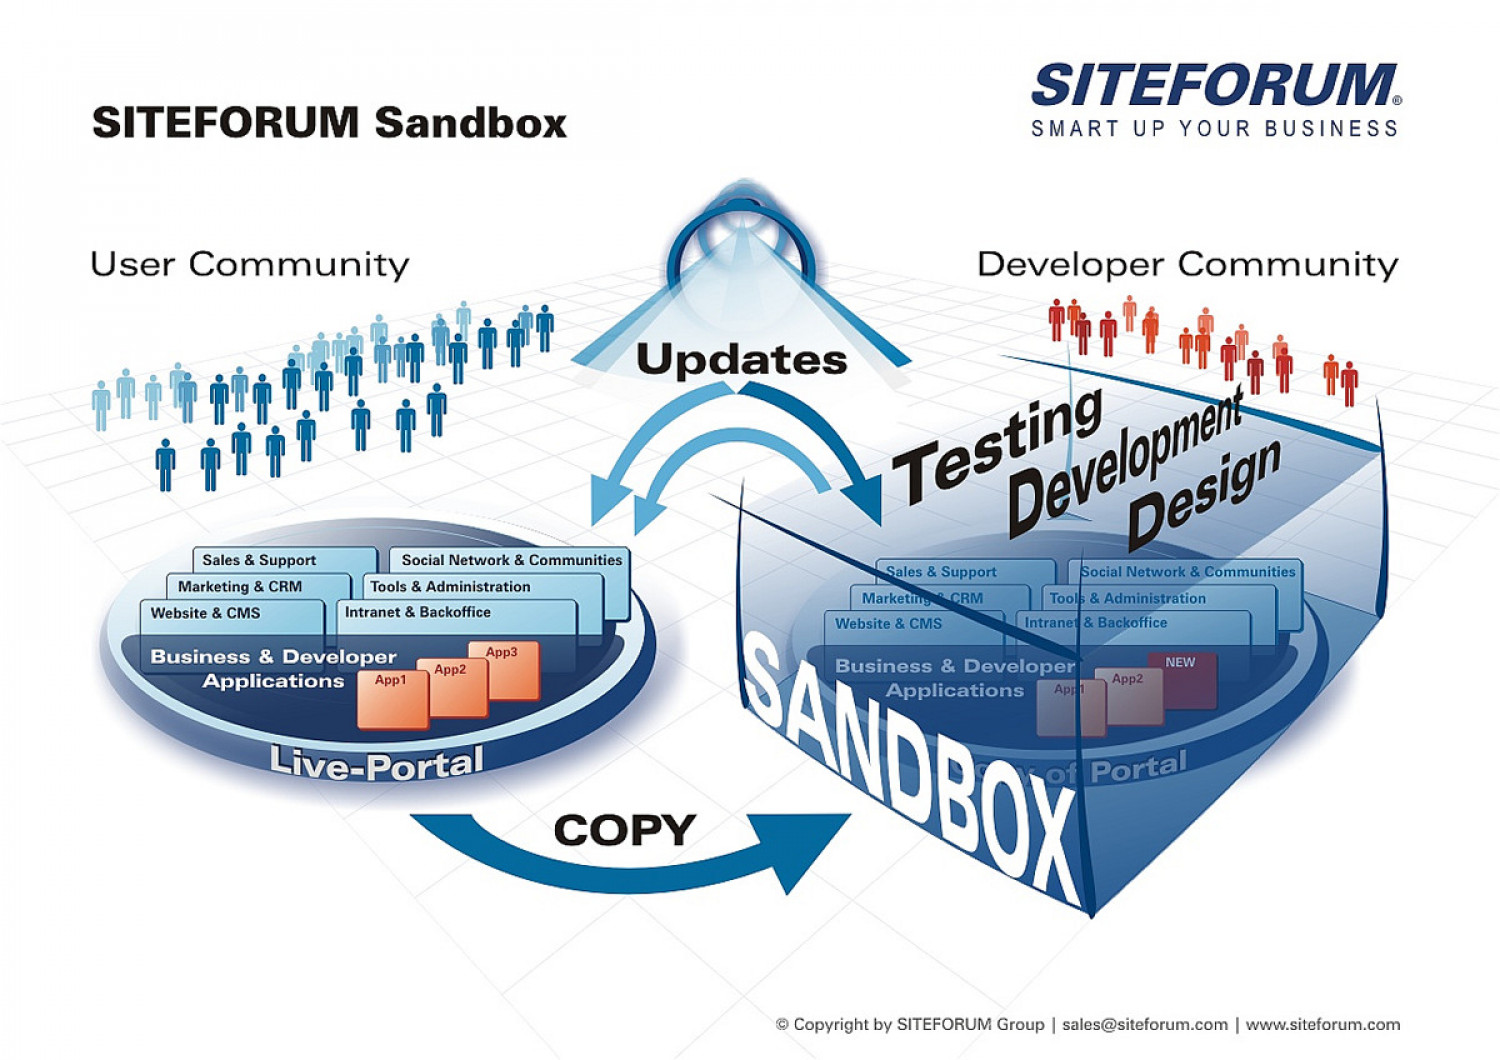 SITEFORUM Sandbox Infographic